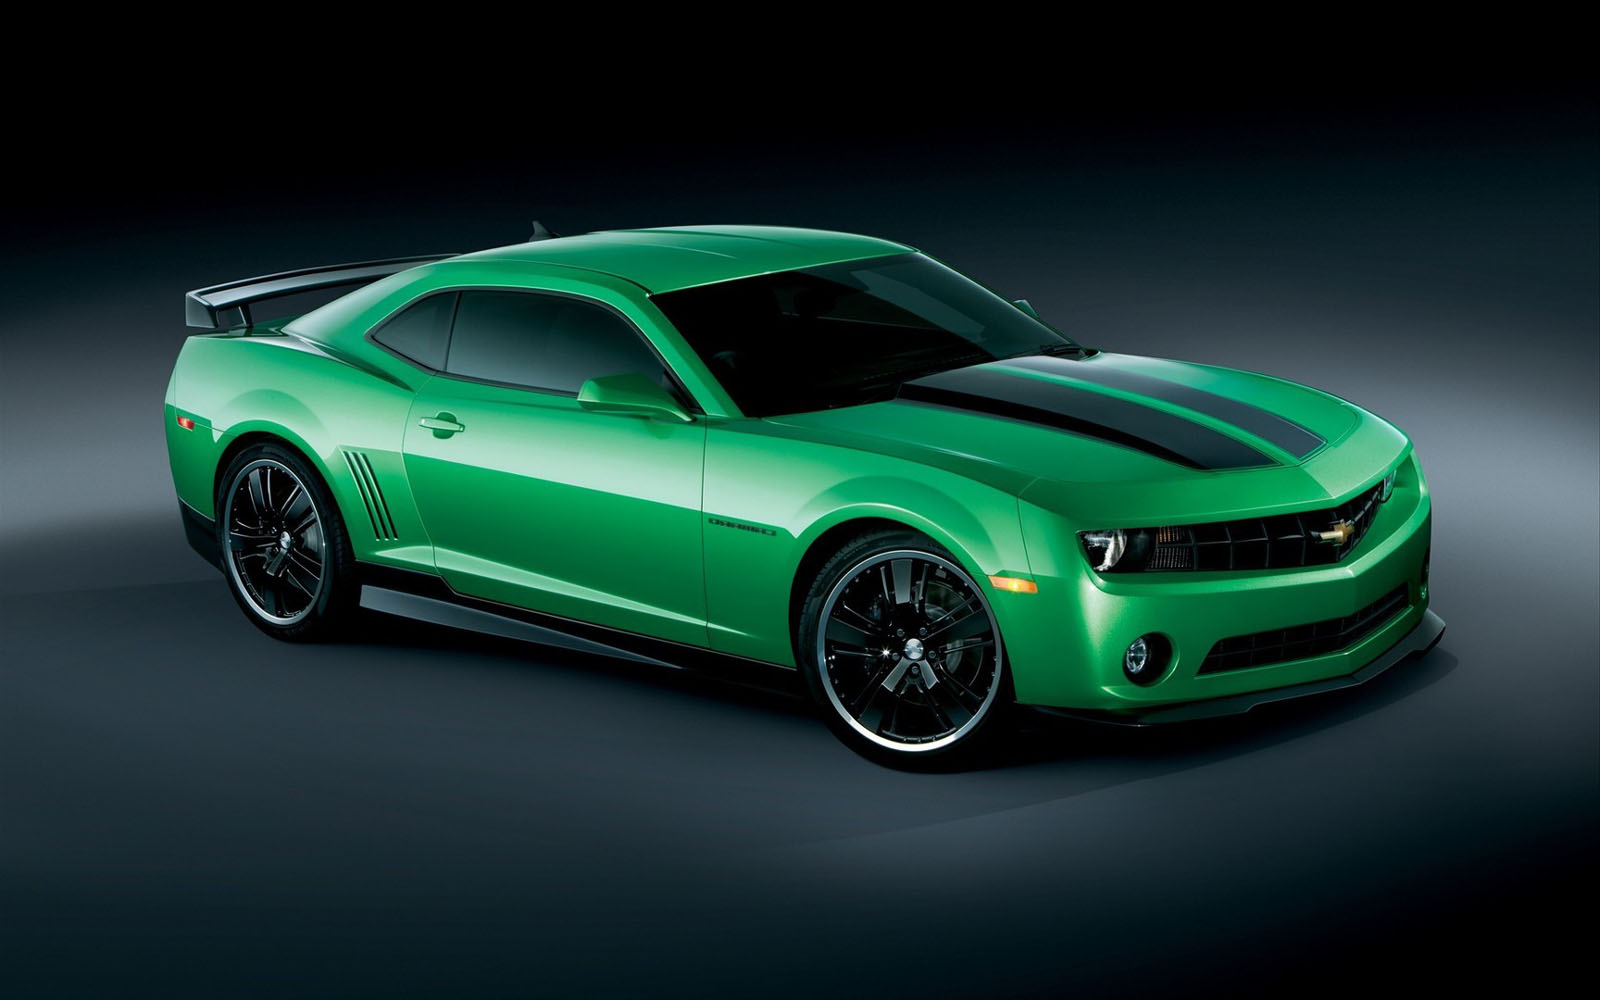 Chevrolet Camaro Synergy Car Wallpapers Hd Car Wallpapers